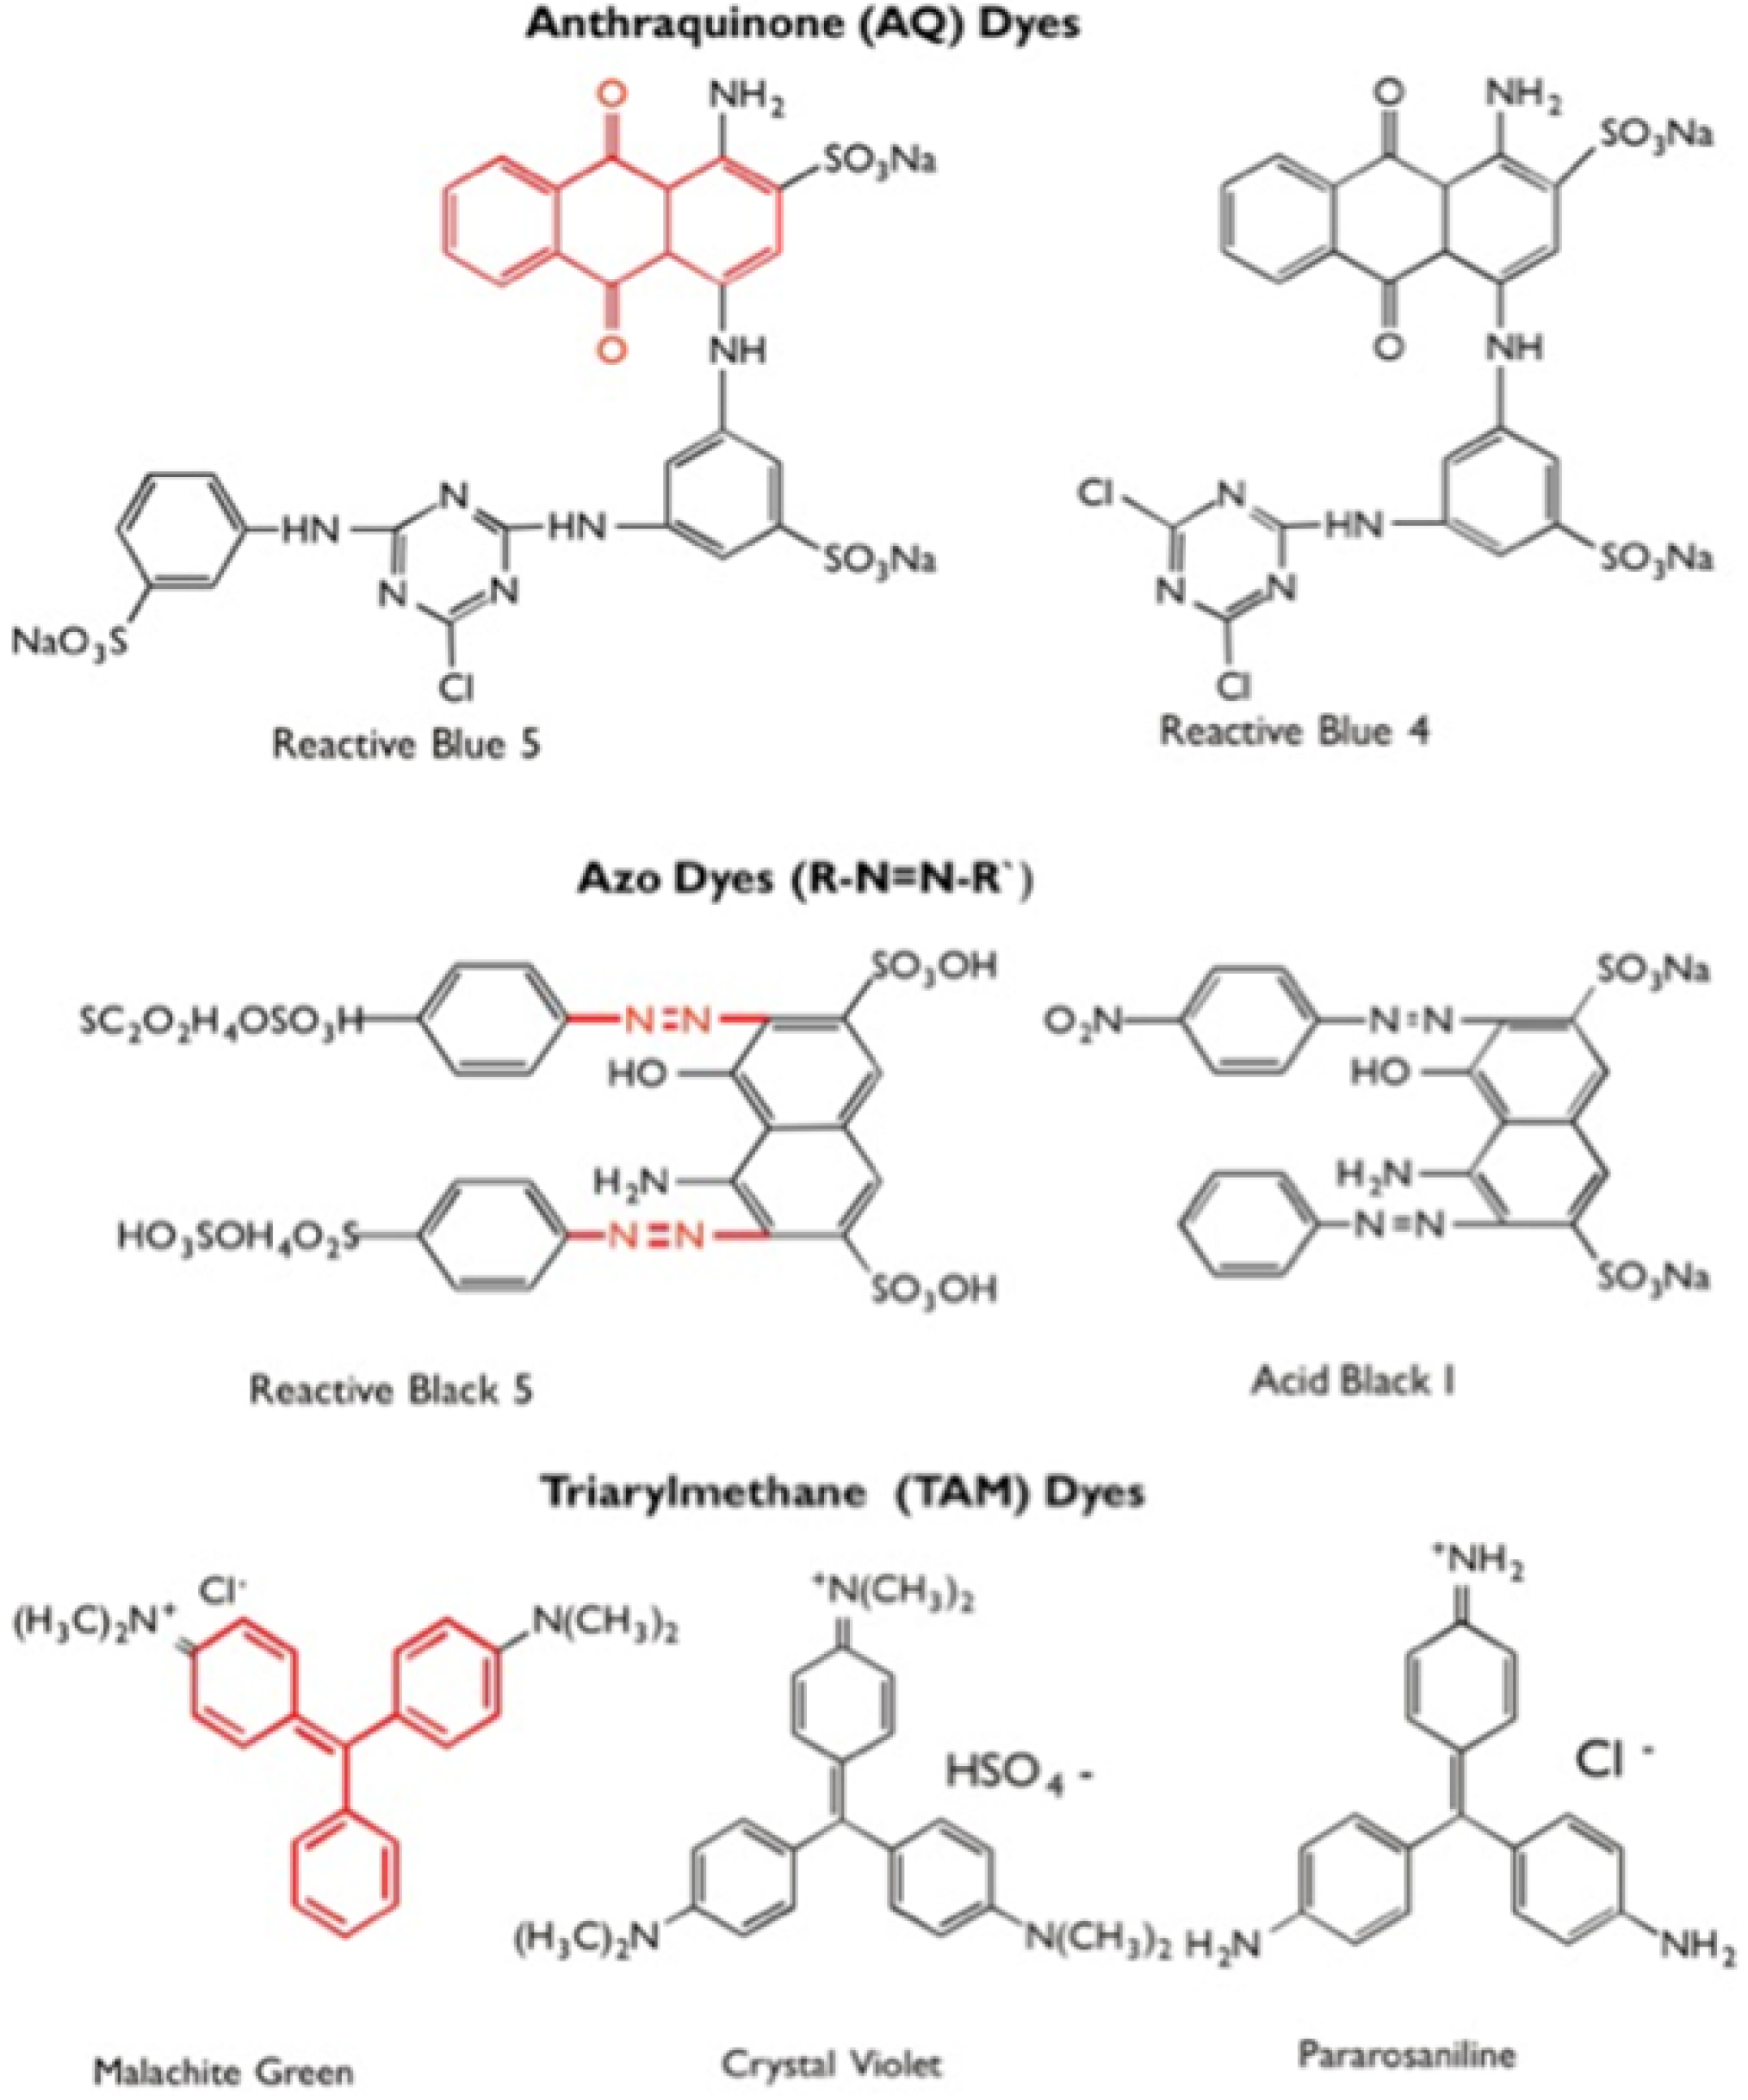 Explorations and Applications of Enzyme-linked